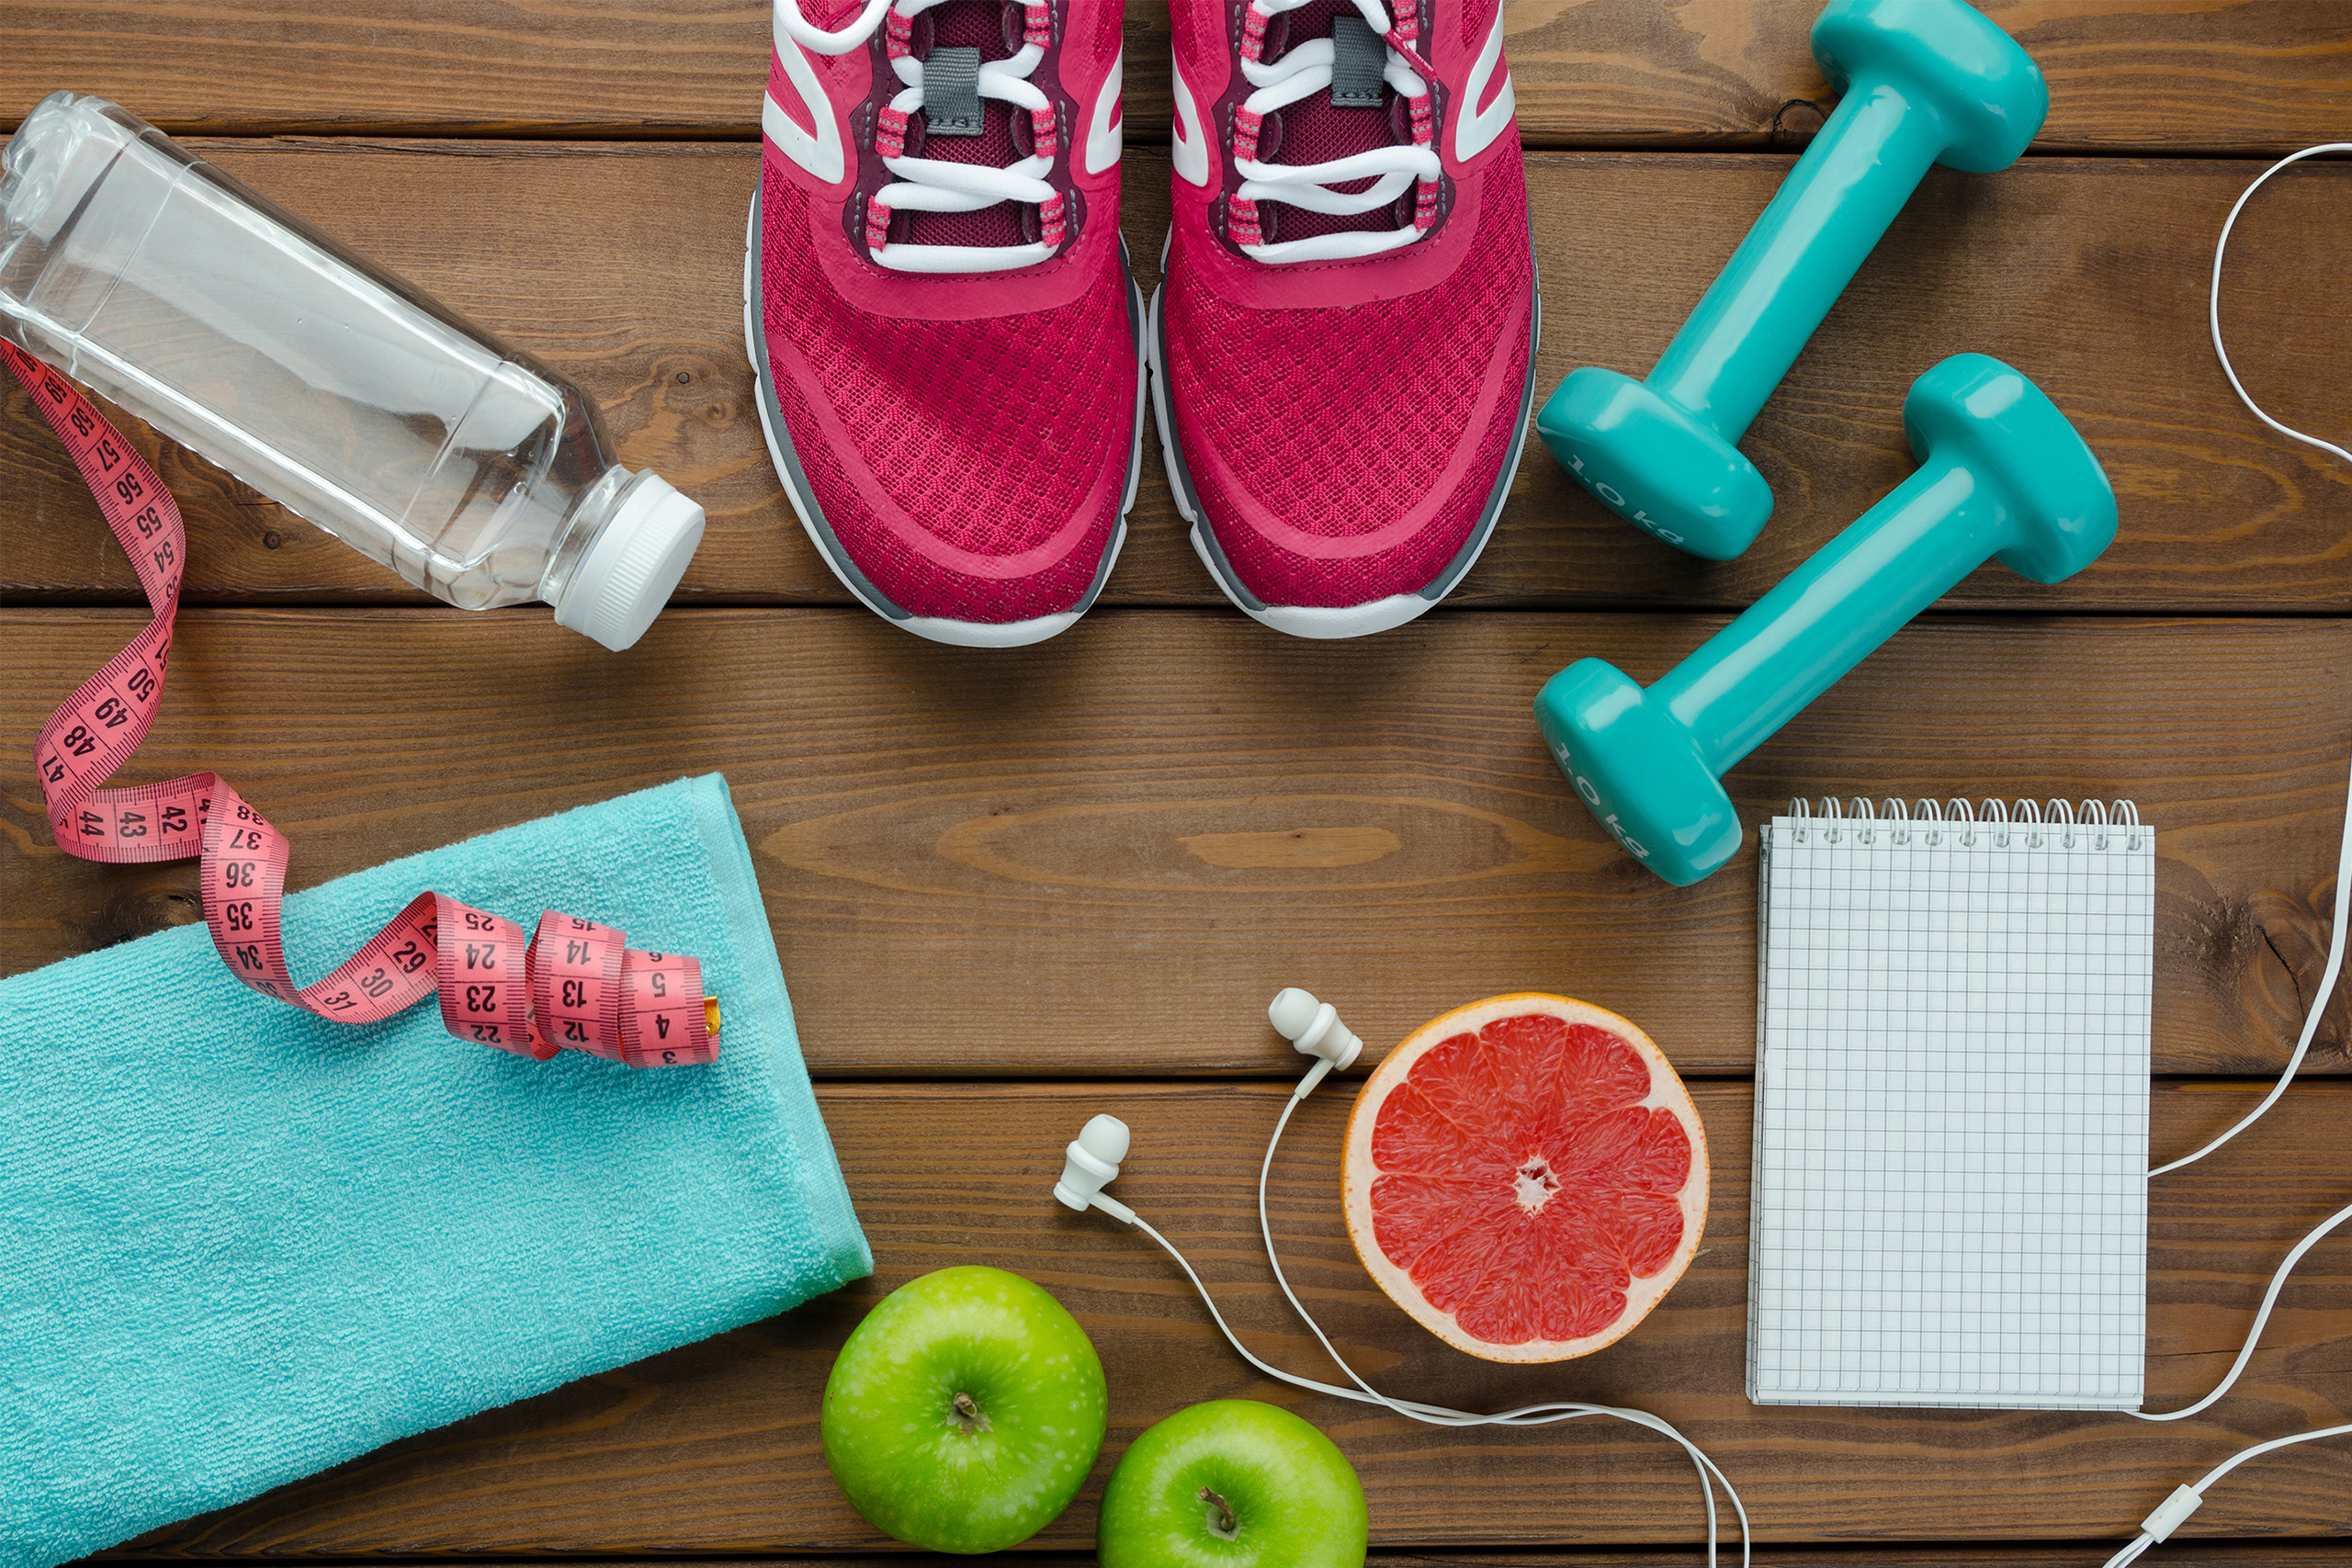 10 Healthy Lifestyle Habits for Busy People